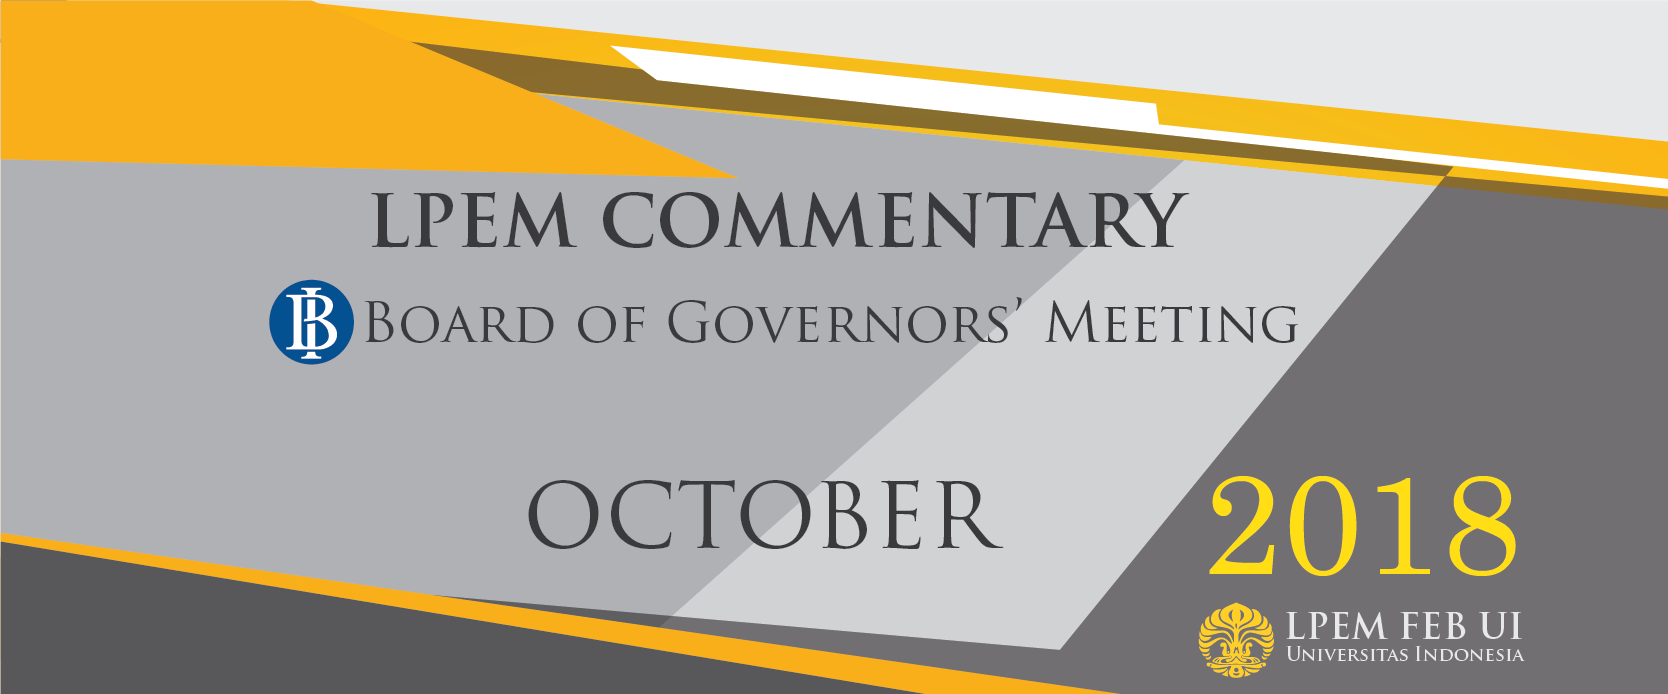 MACROECONOMIC ANALYSIS SERIES:  BI Board of Governor Meeting,  October 2018